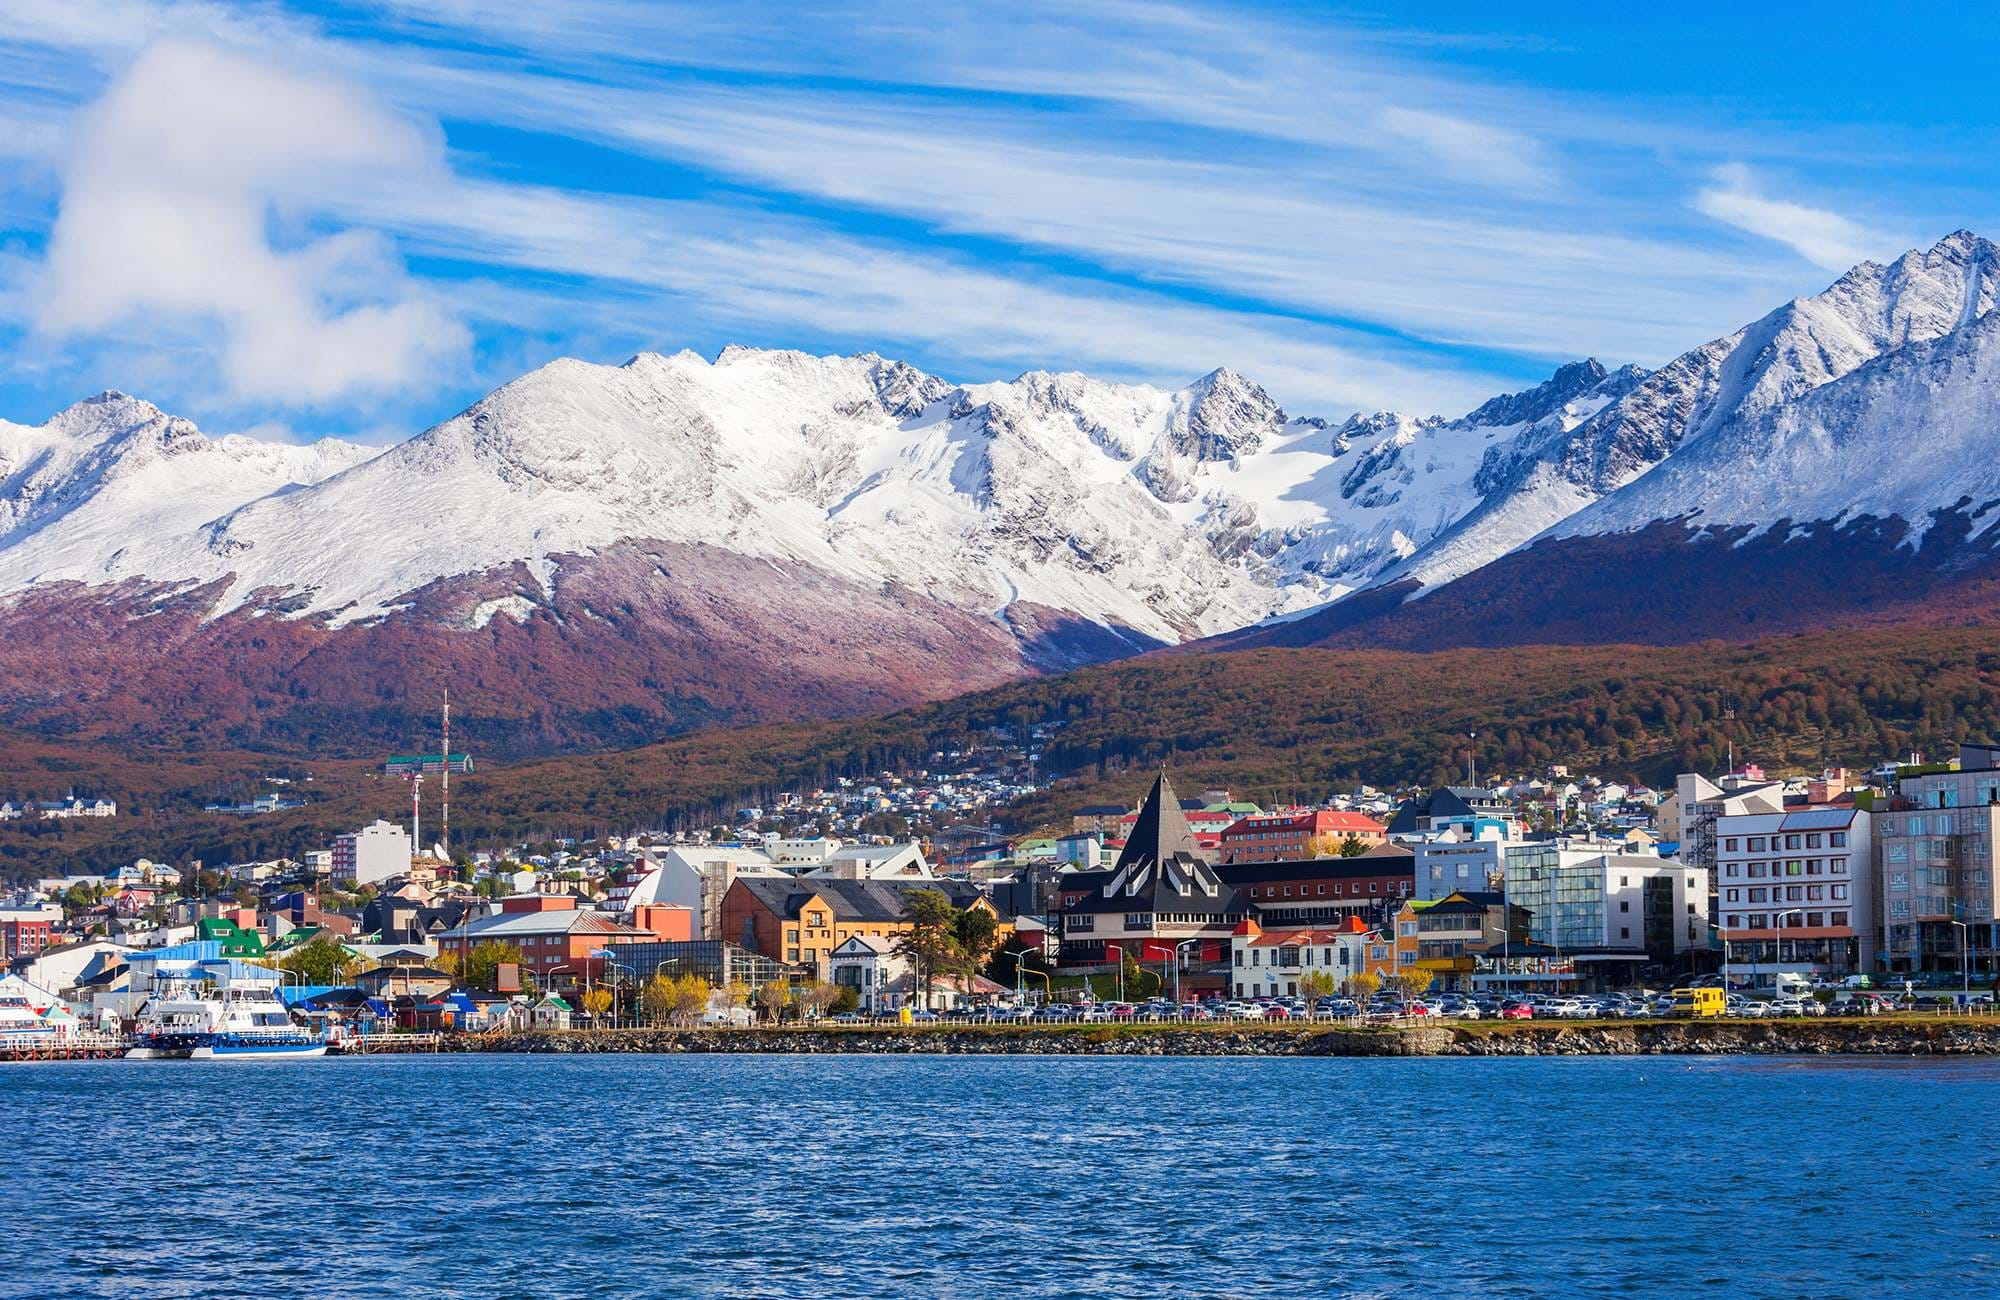 ushuaia-argentina-view-from-the-sea